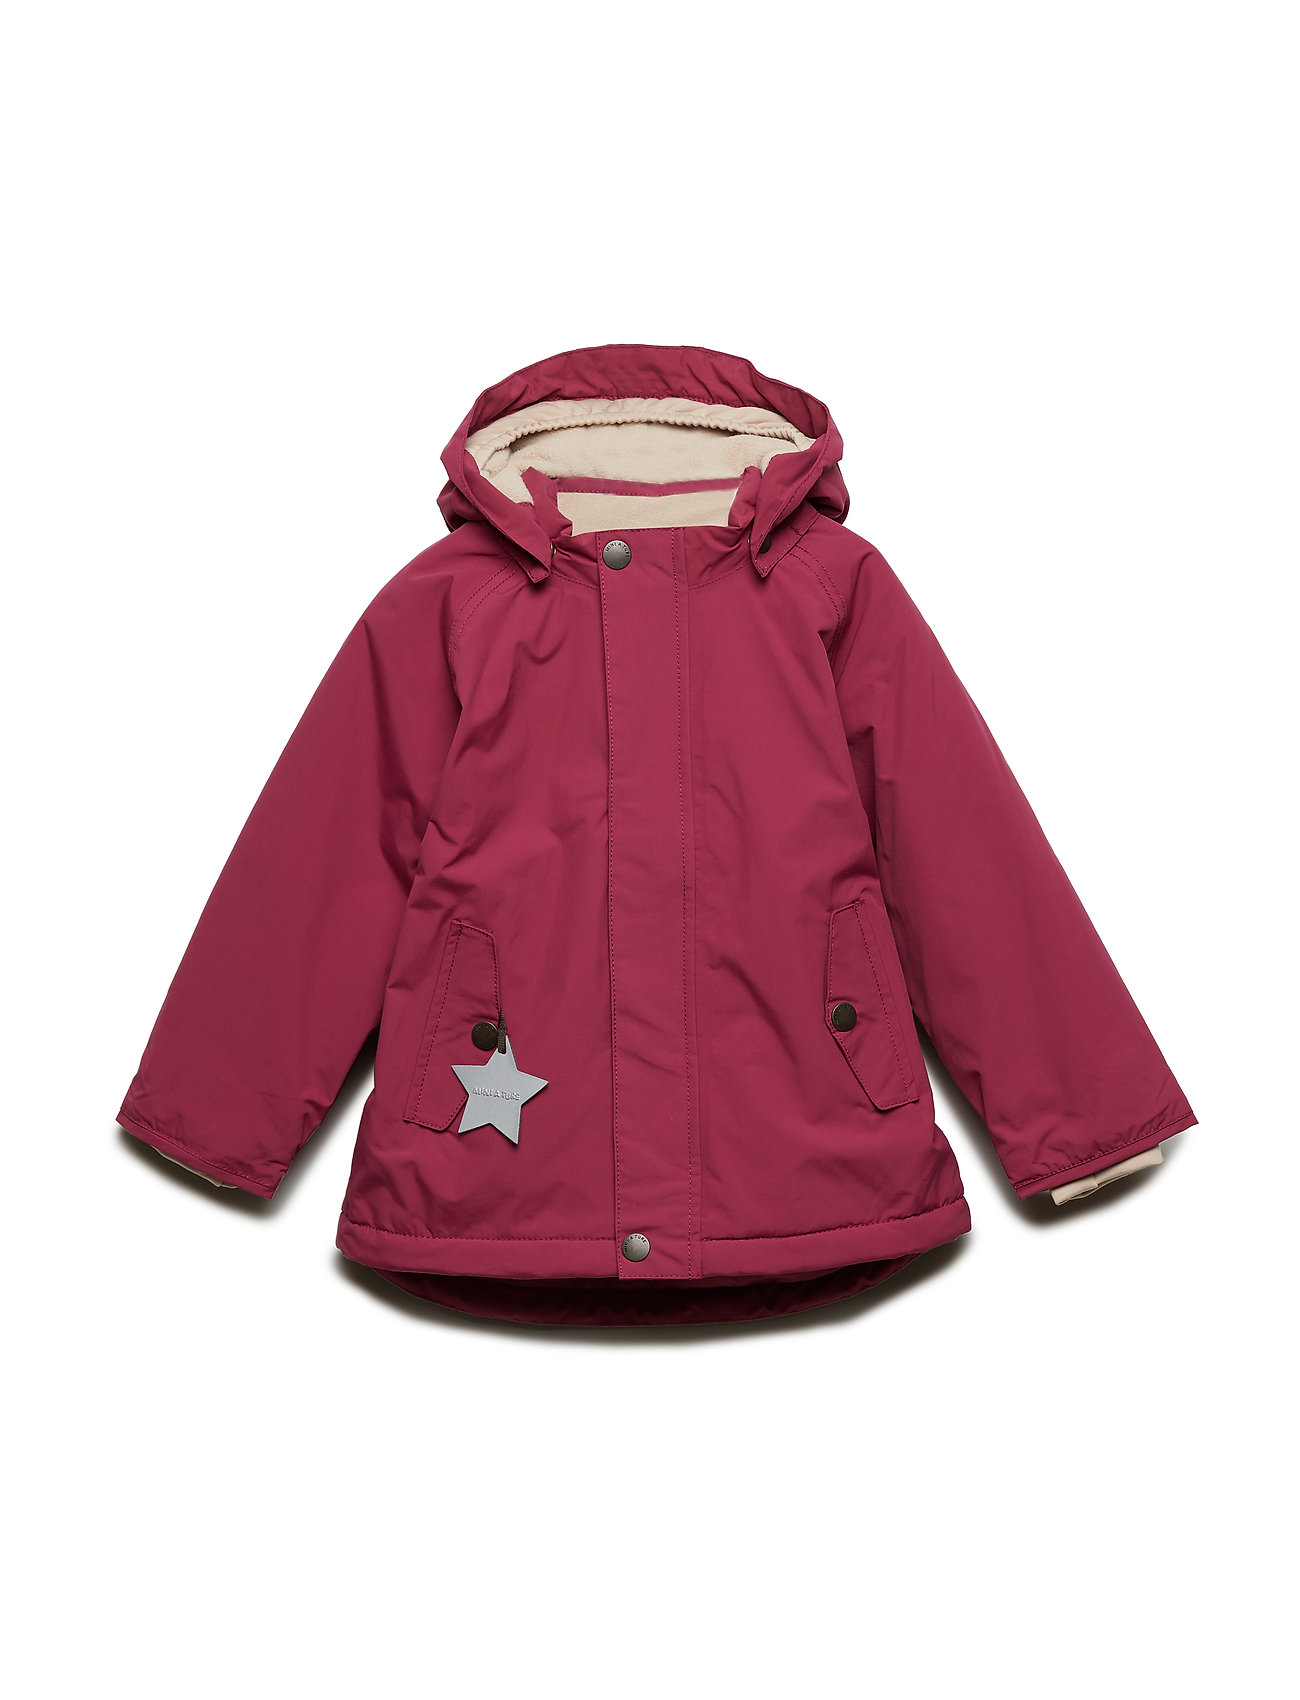 Mini A Ture Wally Jacket, M - CHERRY